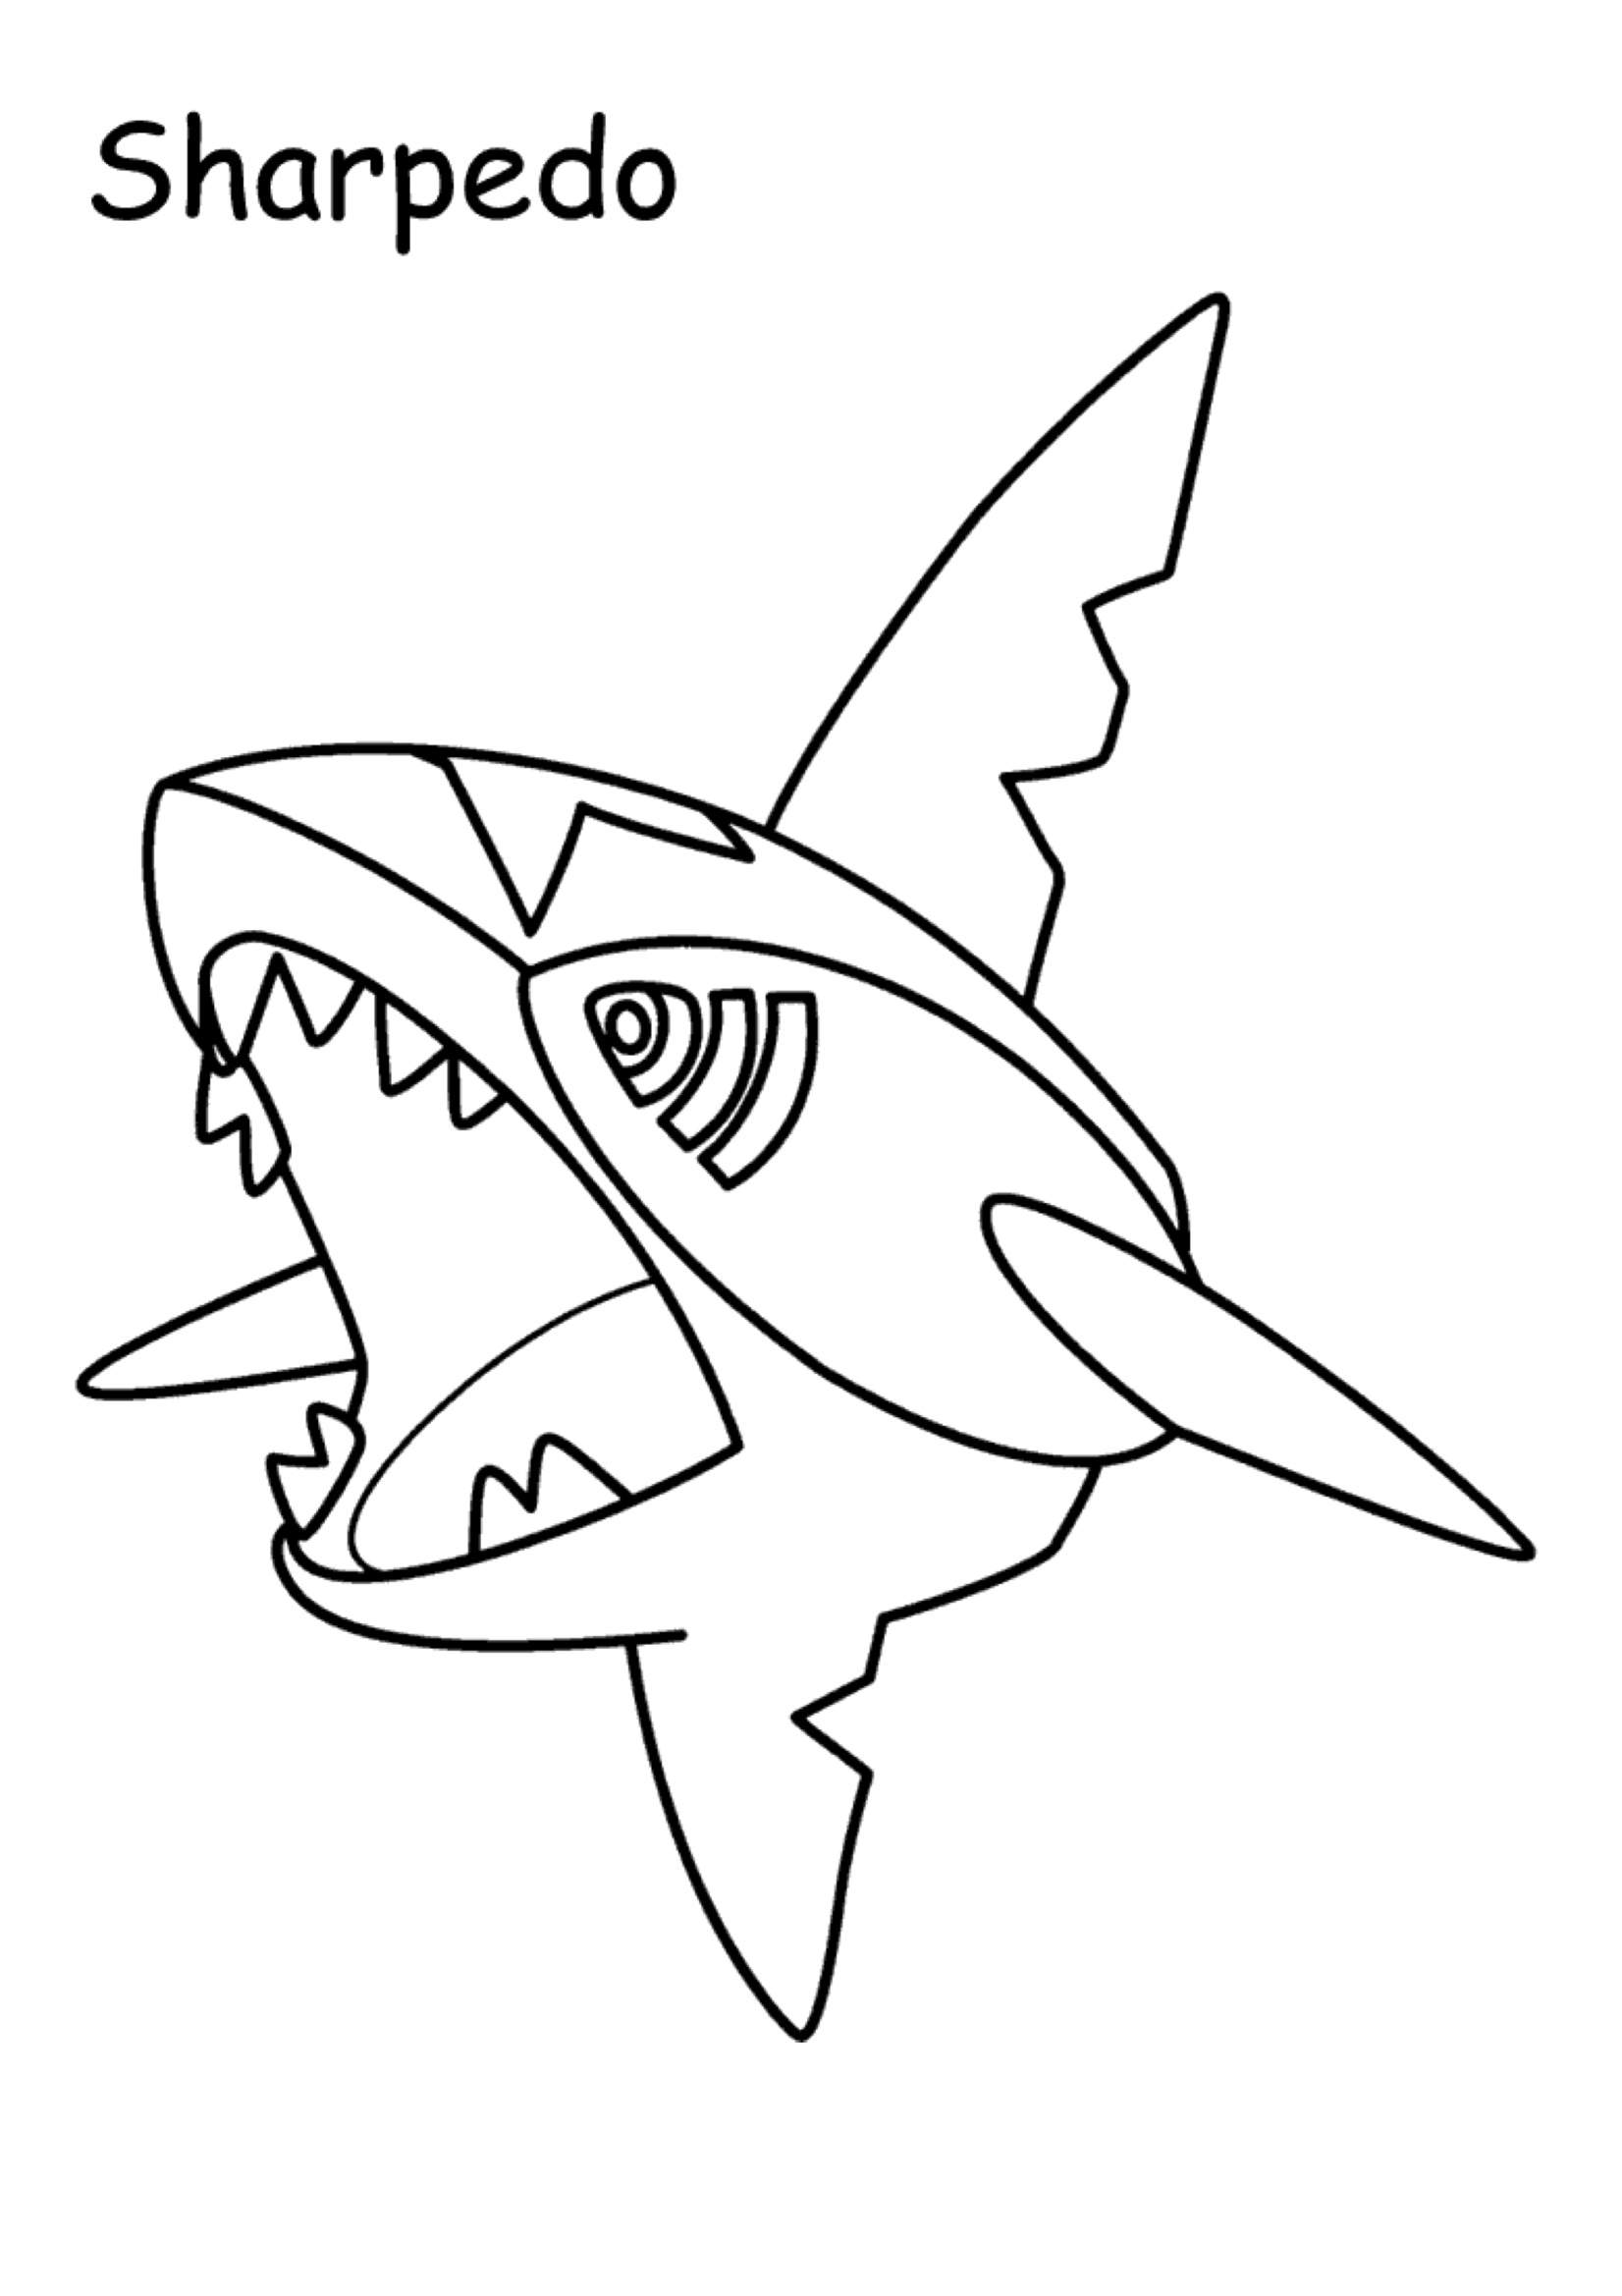 Gratis kleurplaat Pokemon Sharpedo